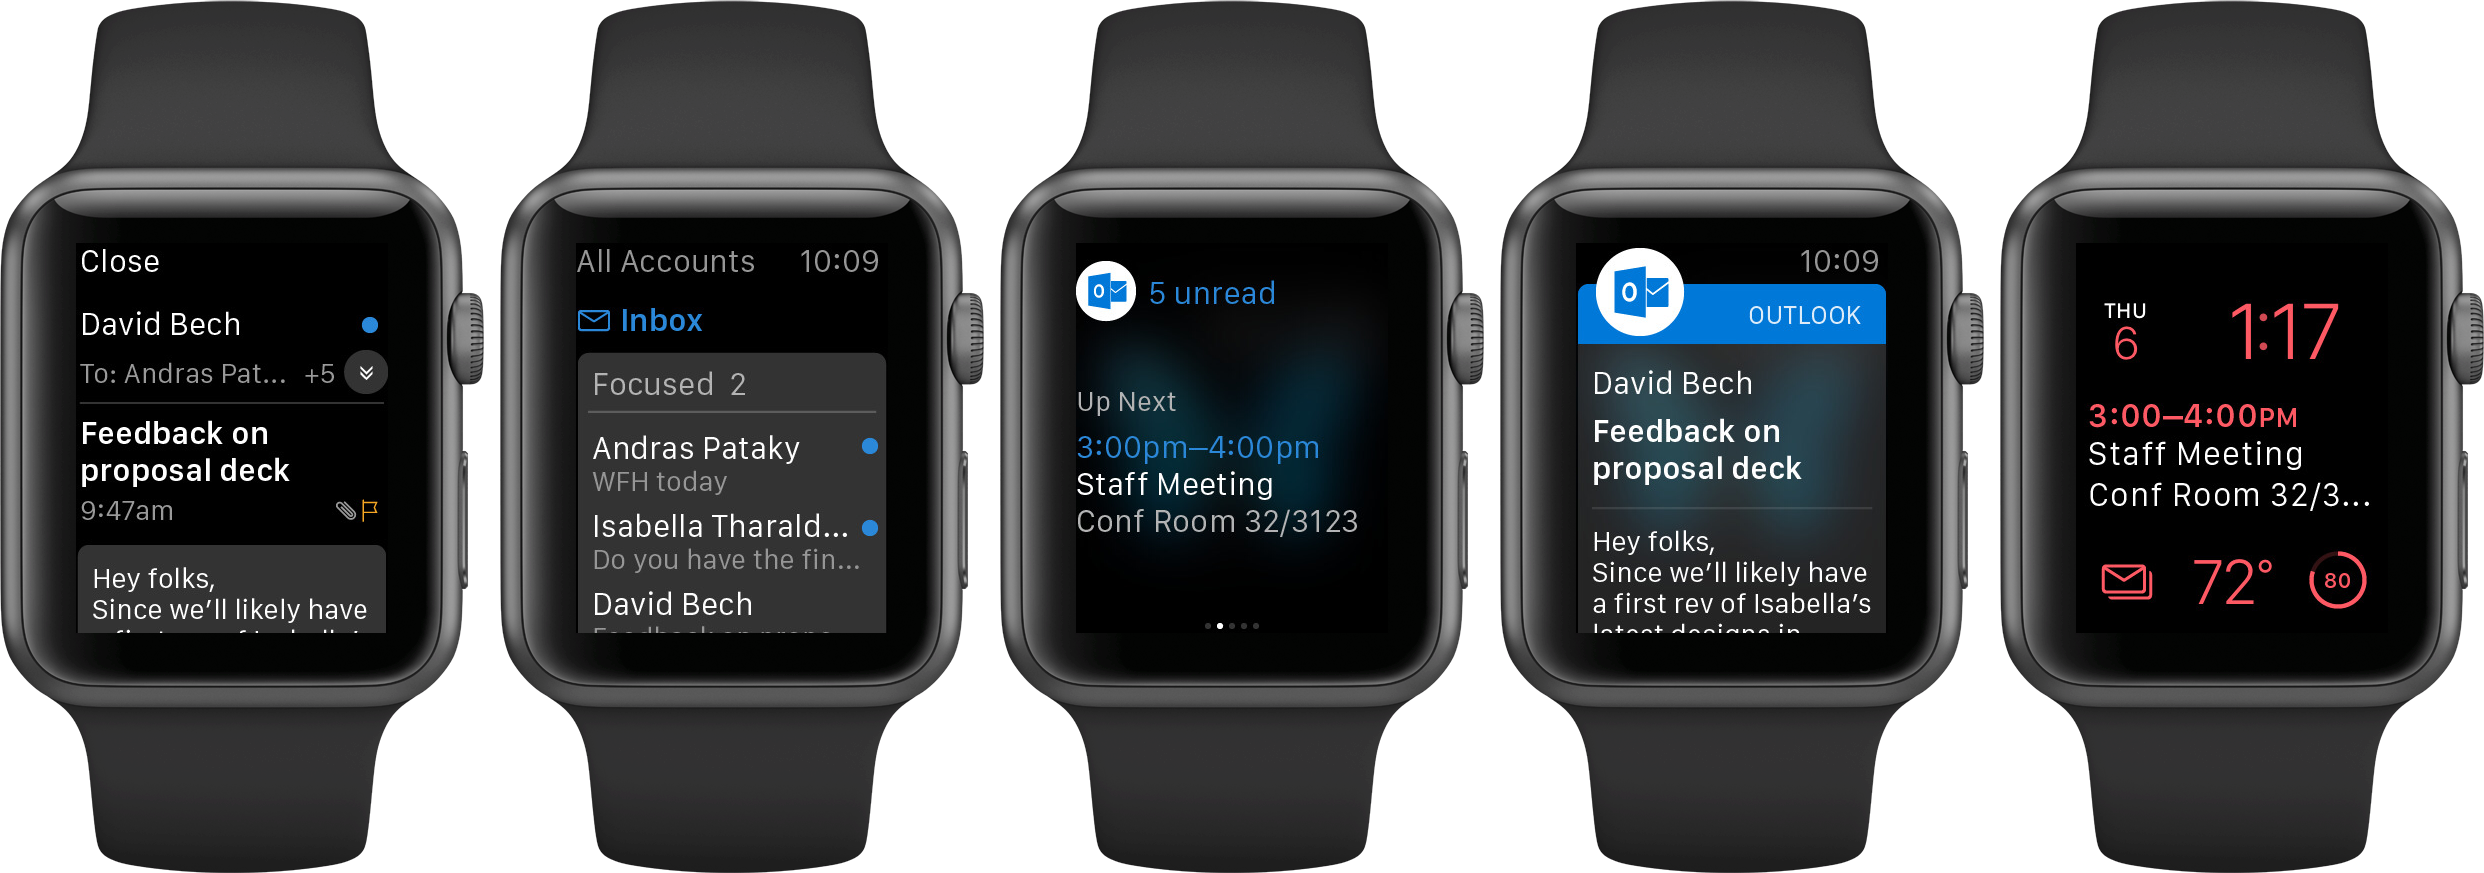 Captura de pantalla 001 de Microsoft Outlook 2.0 para iOS Apple Watch